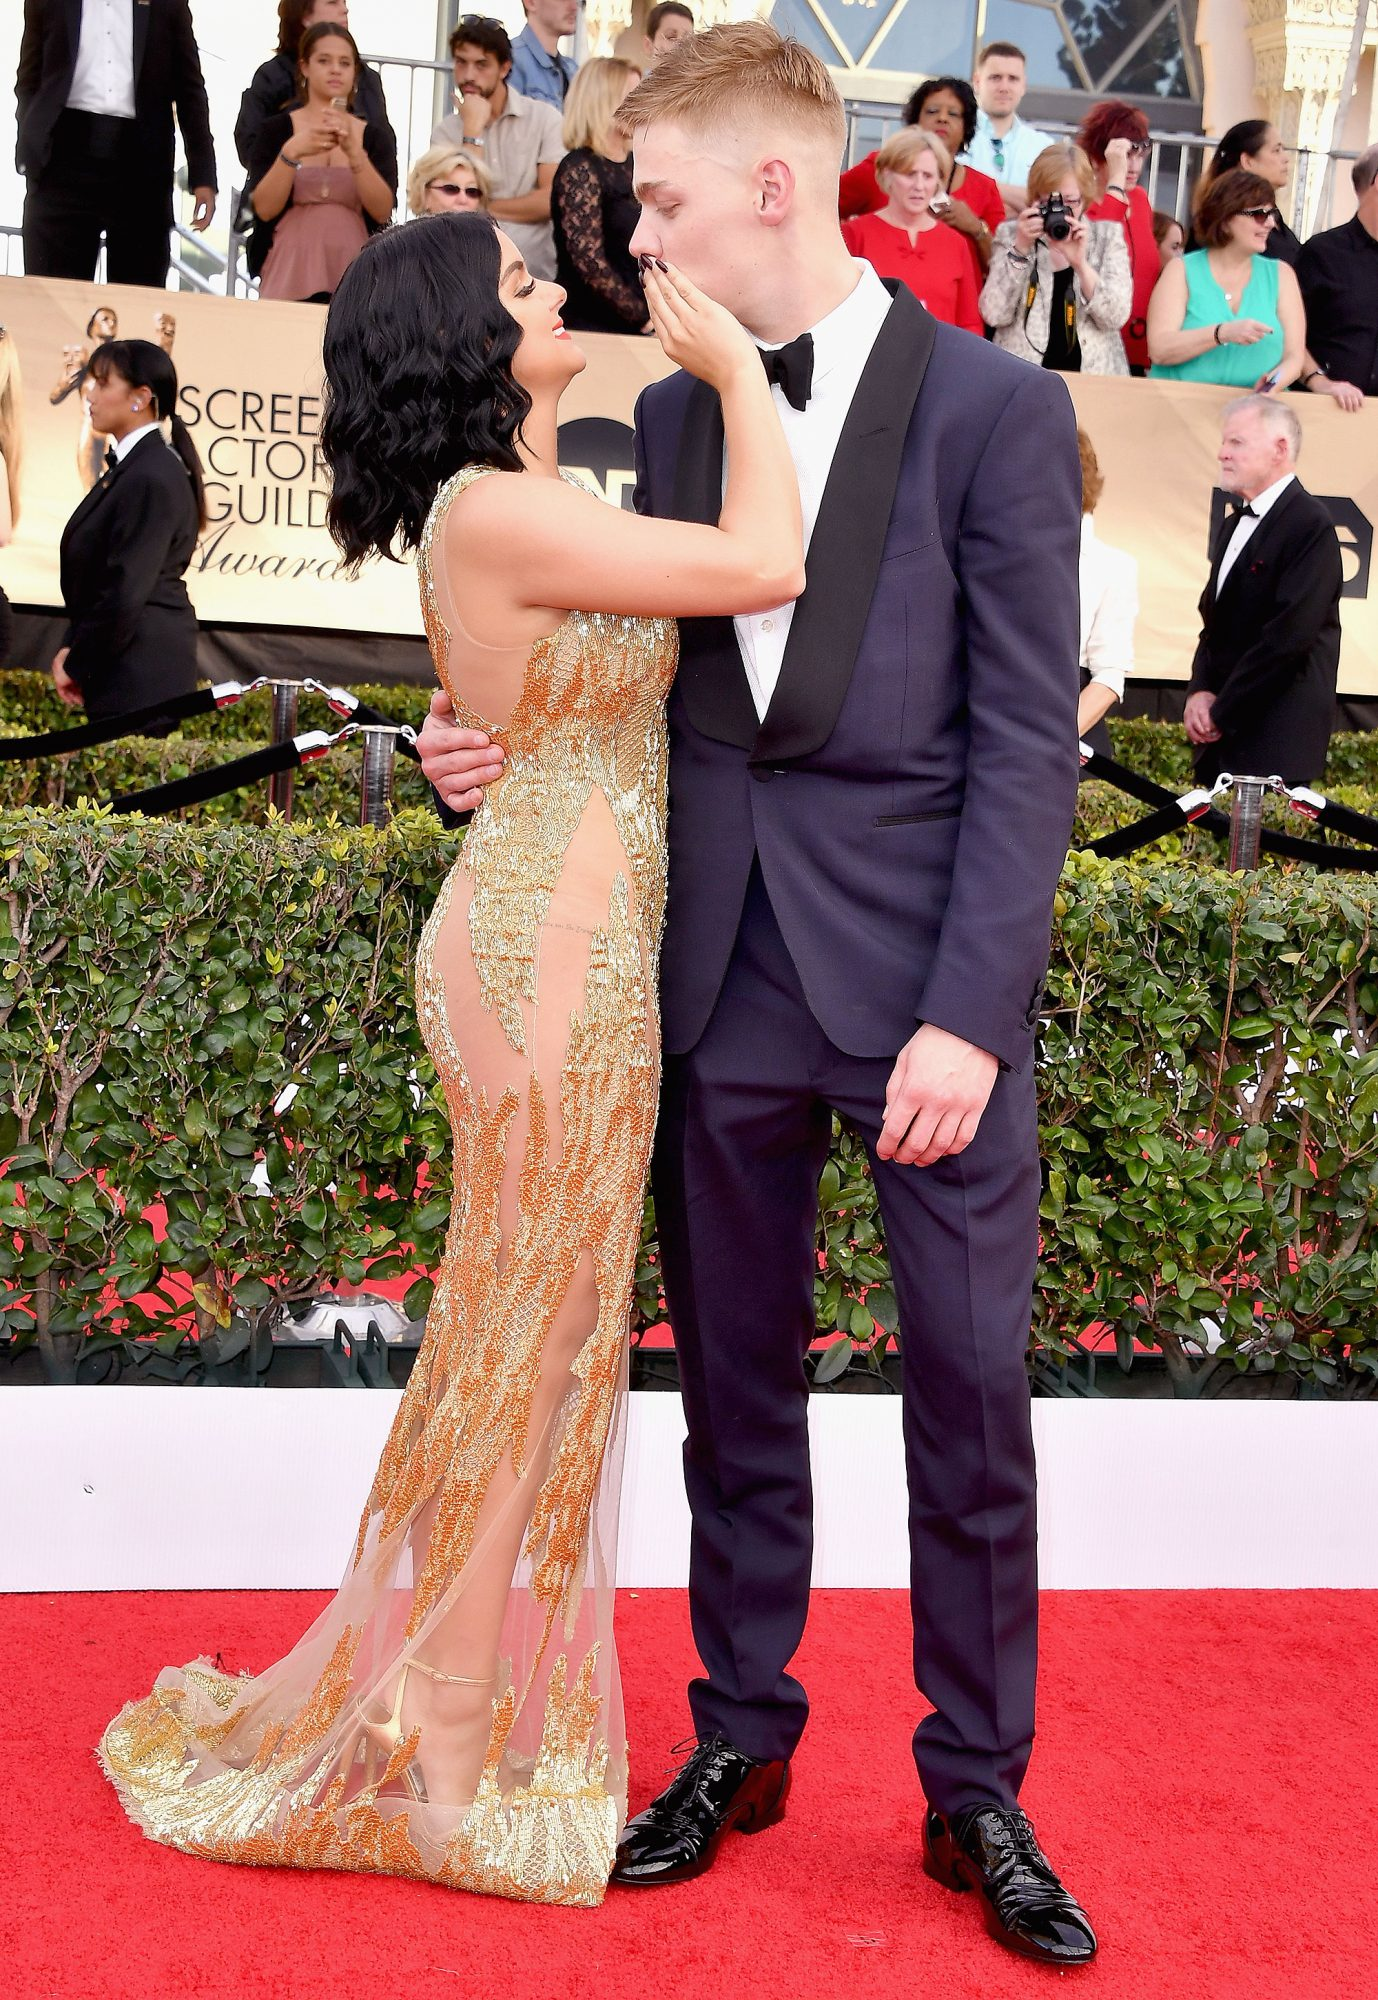 LOS ANGELES, CA - JANUARY 29: Actors Ariel Winter (L) and Levi Meaden attend the 23rd Annual Screen Actors Guild Awards at The Shrine Expo Hall on January 29, 2017 in Los Angeles, California. (Photo by Steve Granitz/WireImage)